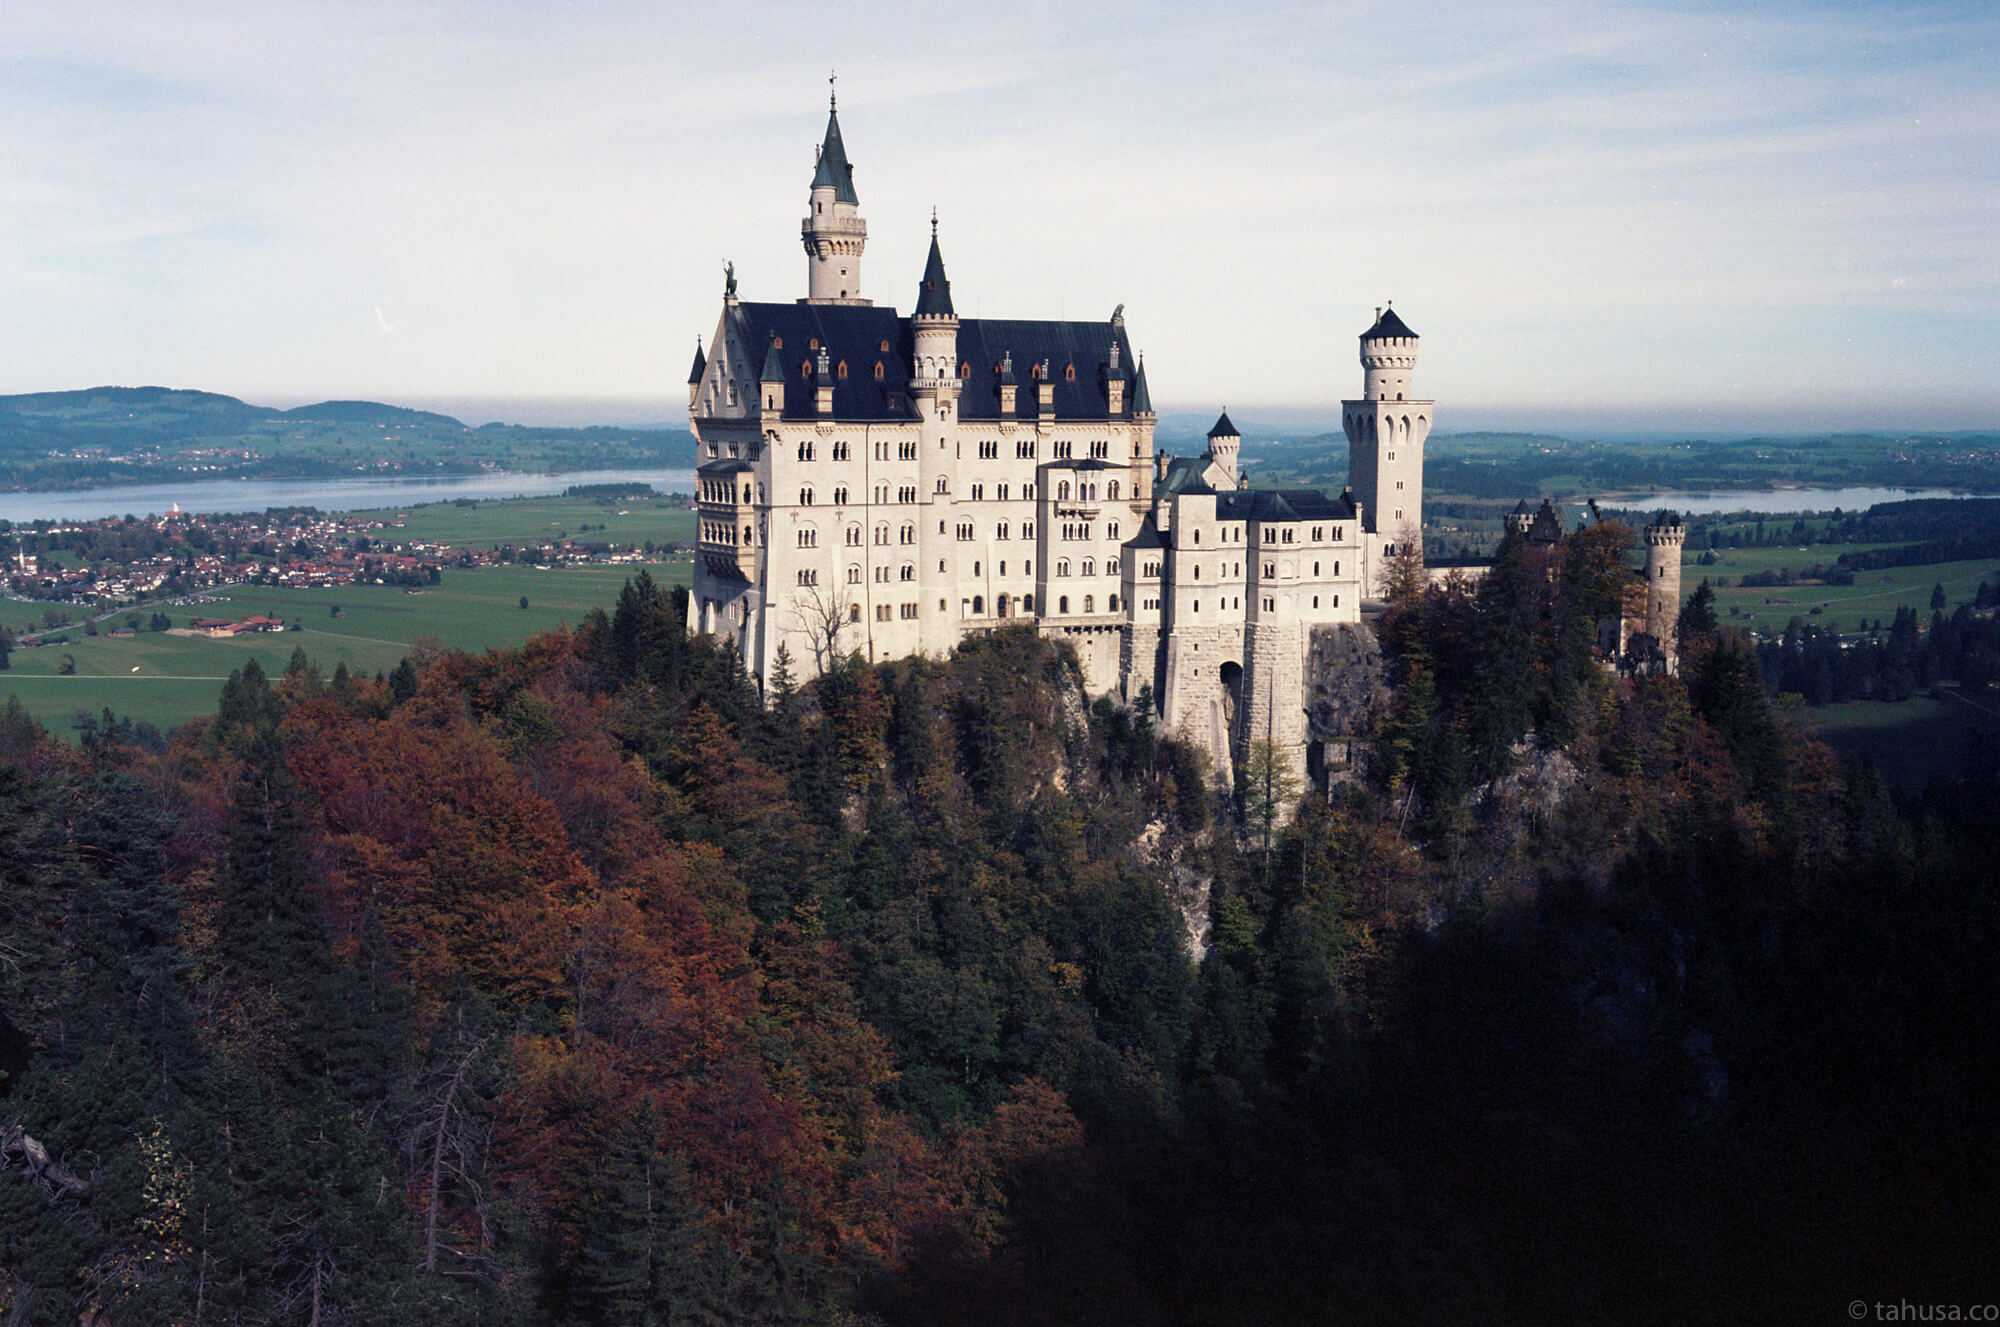 visiting-Neuschwanstein-Castle-füssen-Germany-travel-photography-using-ektar-100-kodak-and-summicron-35mm-f2-8elements-v1-leica-film